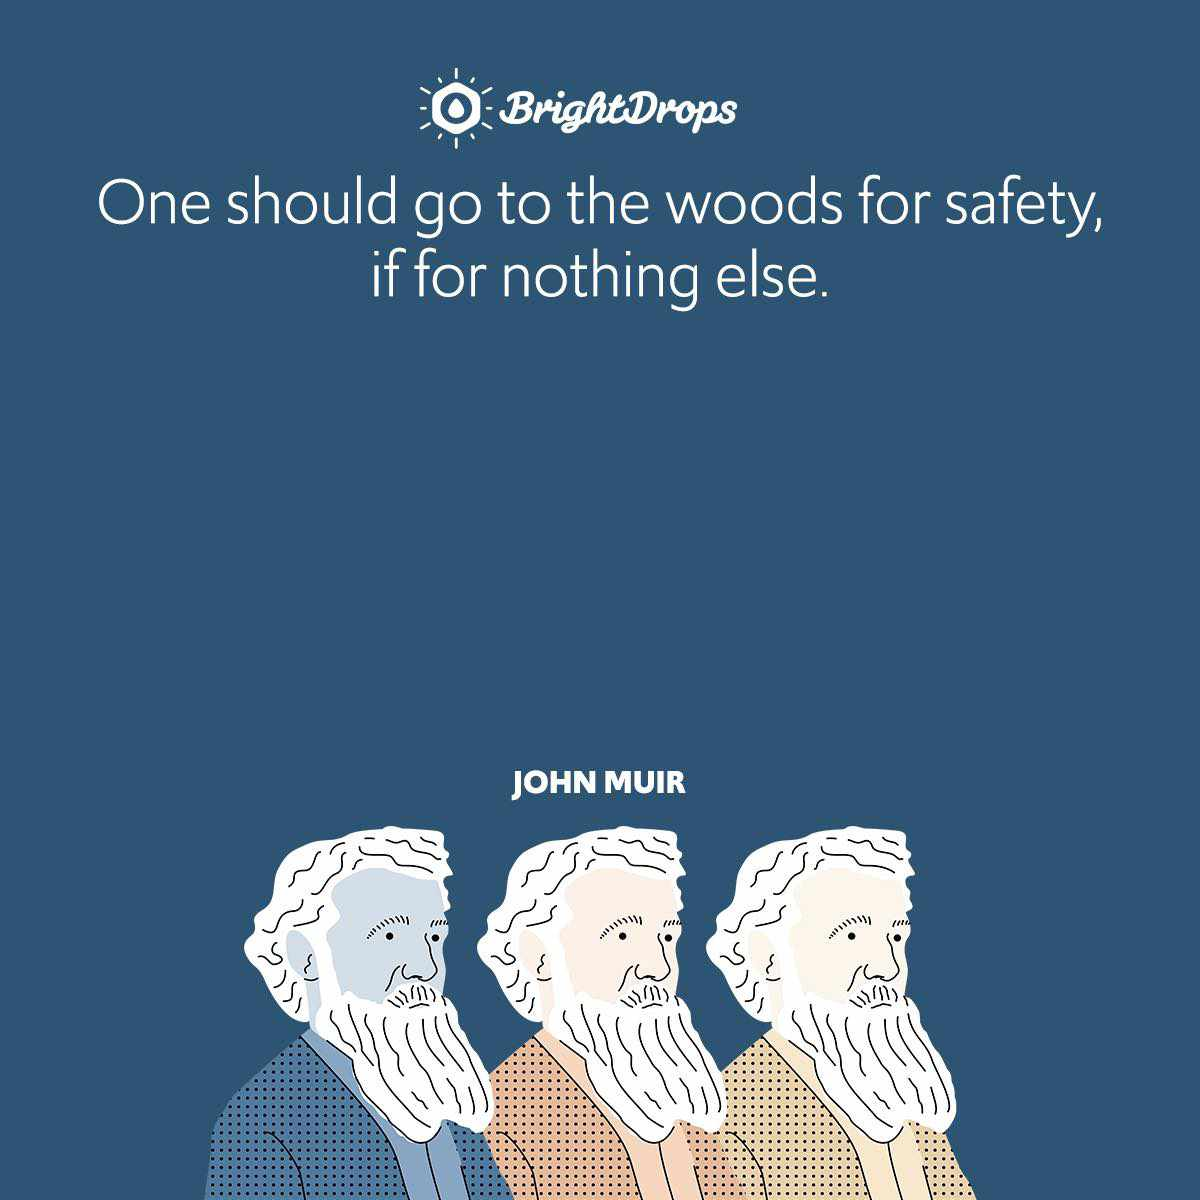 One should go to the woods for safety, if for nothing else.